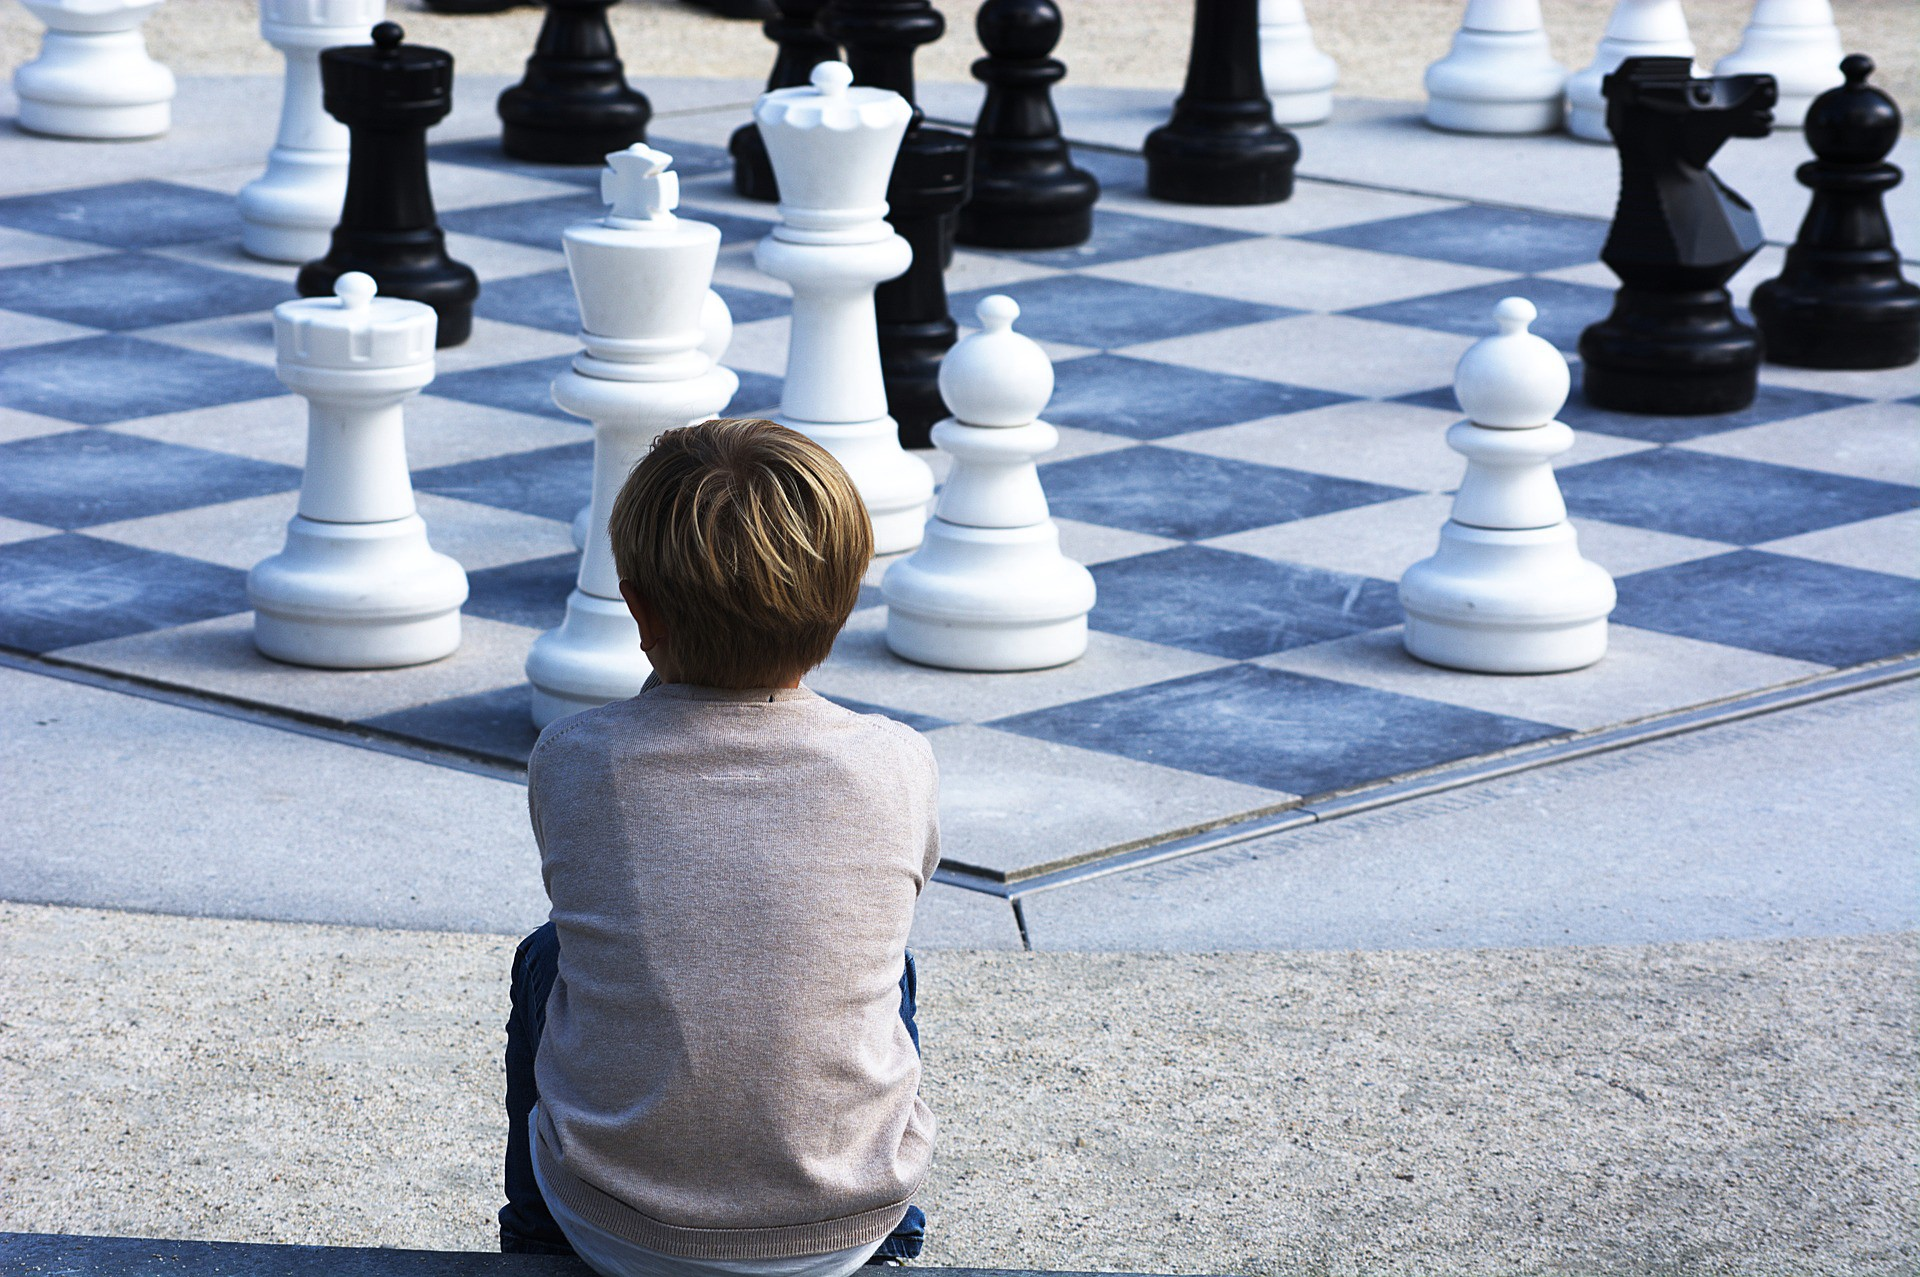 Boy sitting on a concrete barrier looking at a giant chessboard with black and white chesspieces